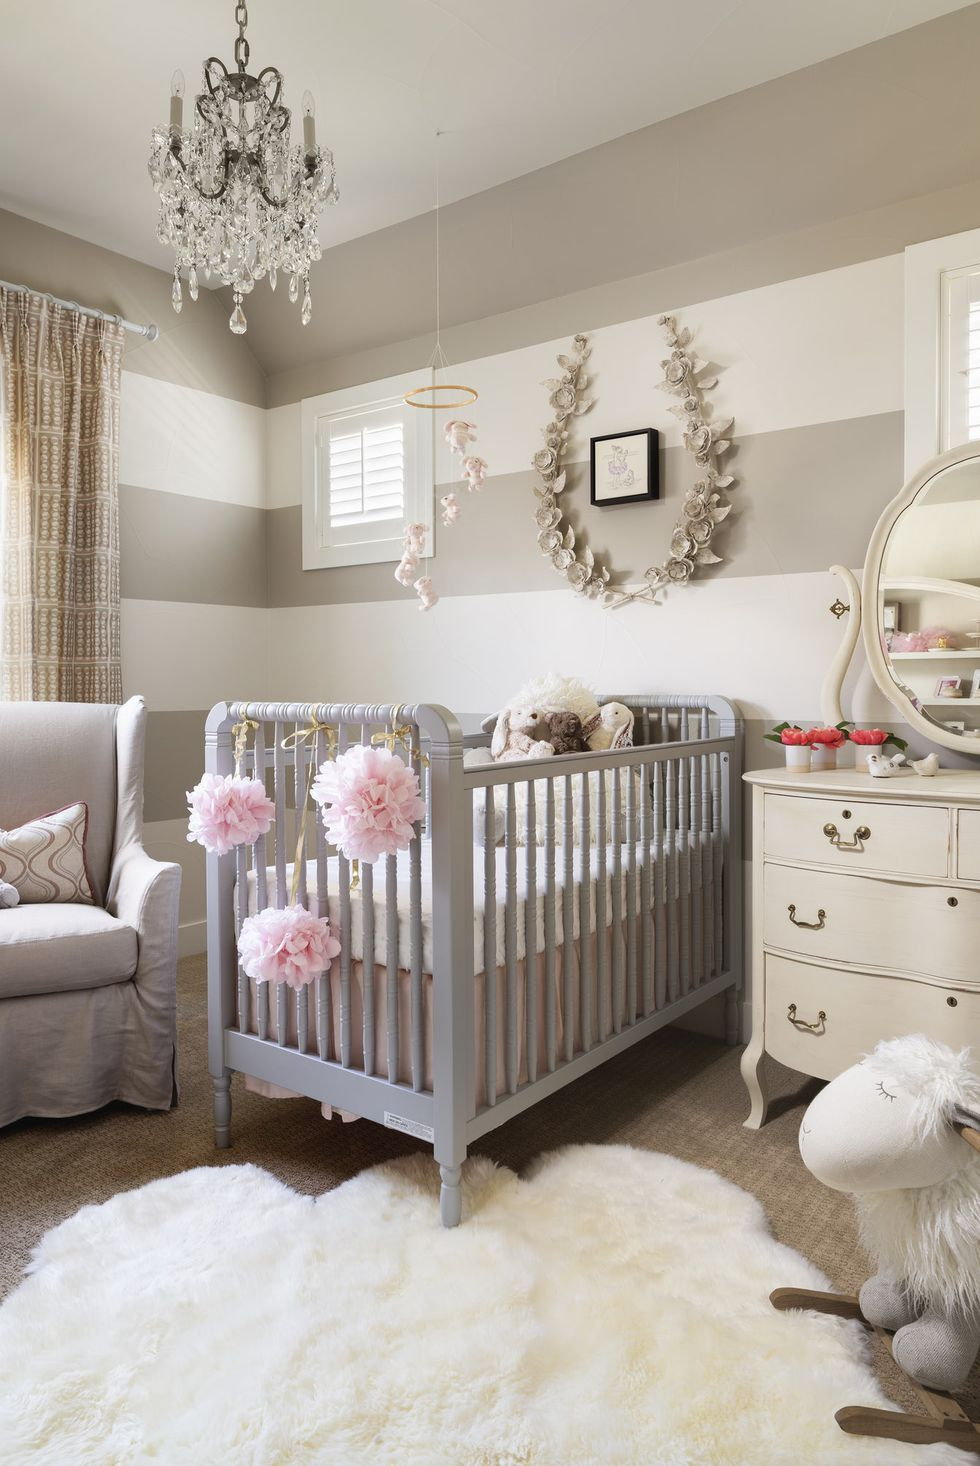 Stylish Baby Rooms Even Adults Would Adore Chic Baby Rooms Baby Room Design Baby Nursery Decor